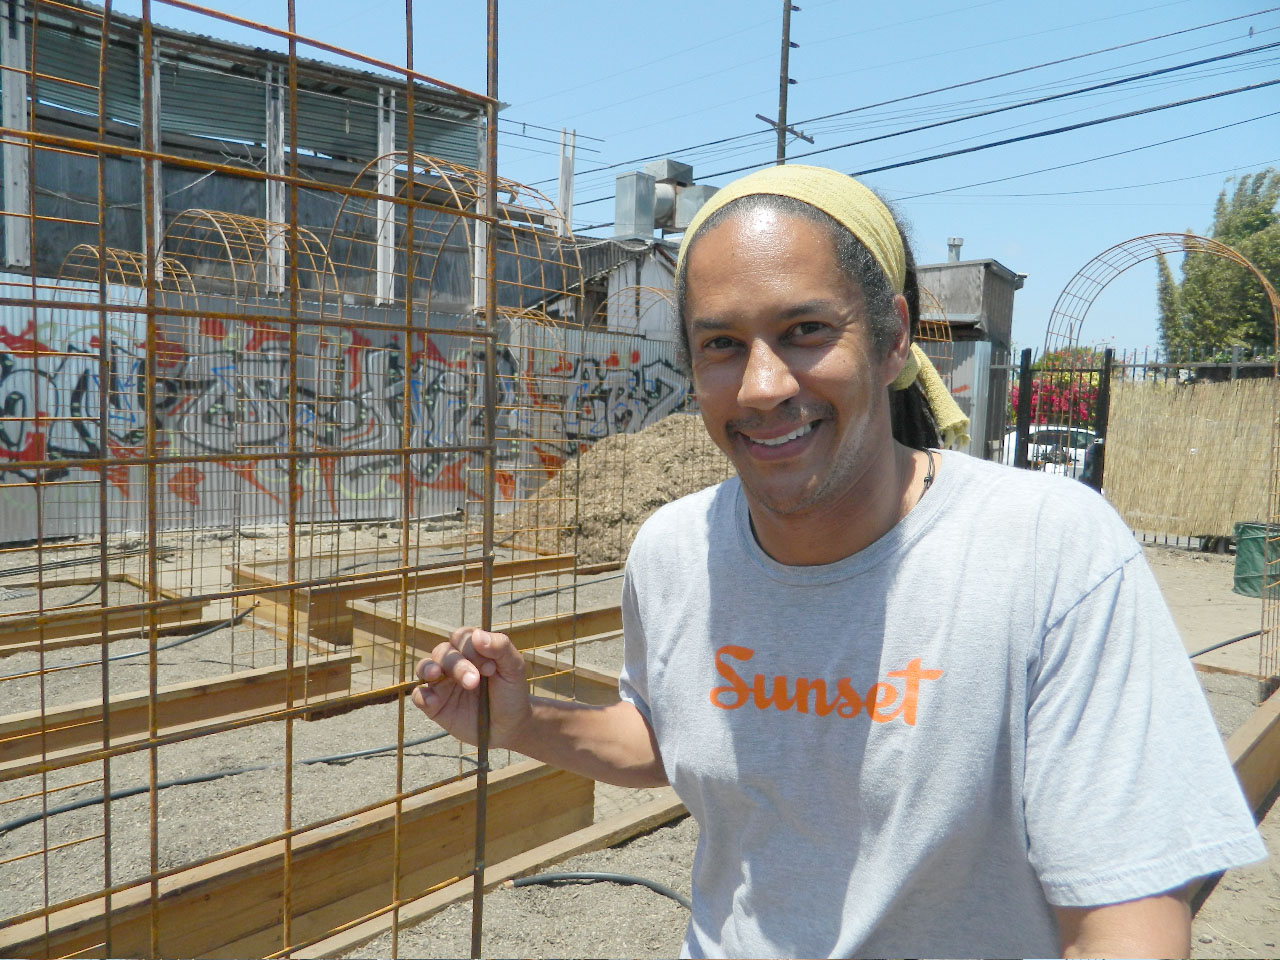 Chef Govind Armstrong poses at the future home of his chef's garden on Abbott Kinney. (Photo courtesy John Blanchette)